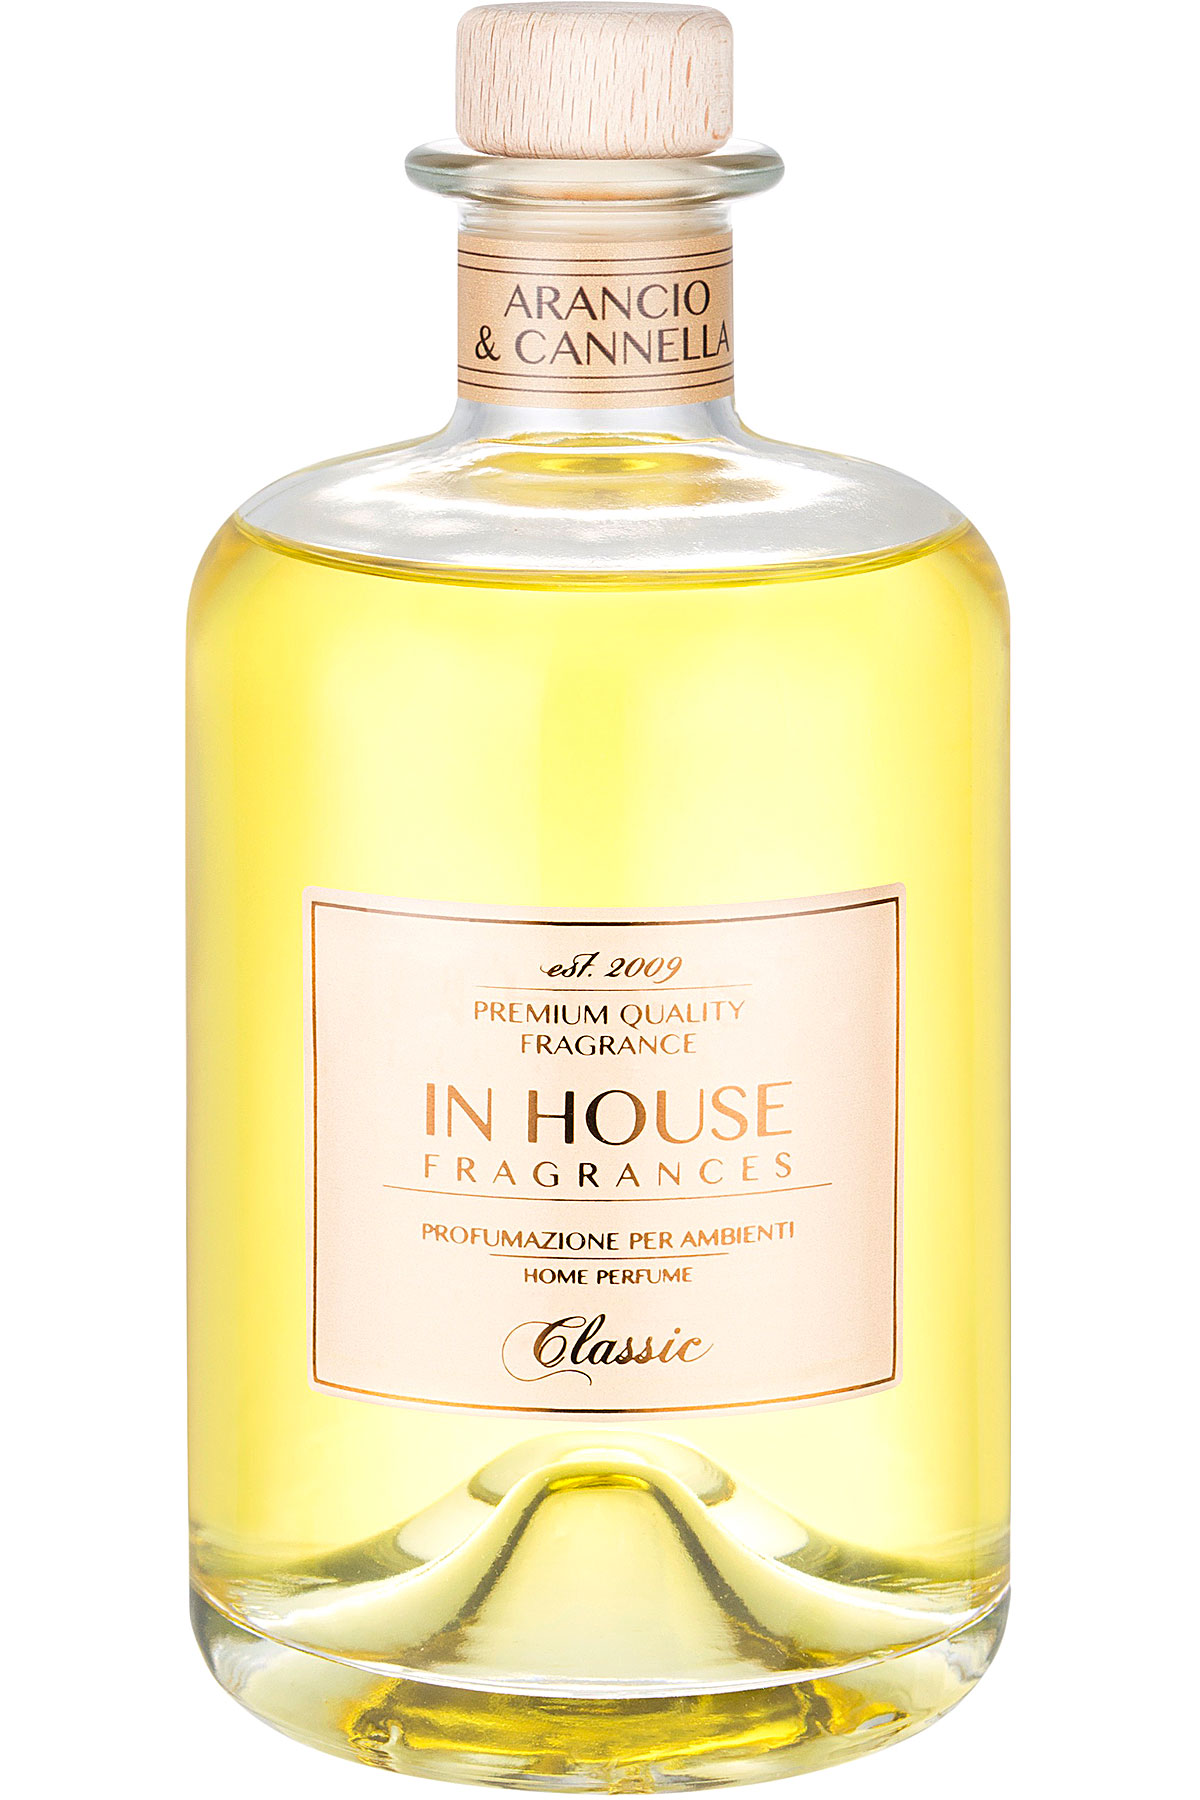 In House Fragrances Home Scents for Men, Ambra & Spezie - Home Diffuser - 500 Ml, 2019, 500 ml